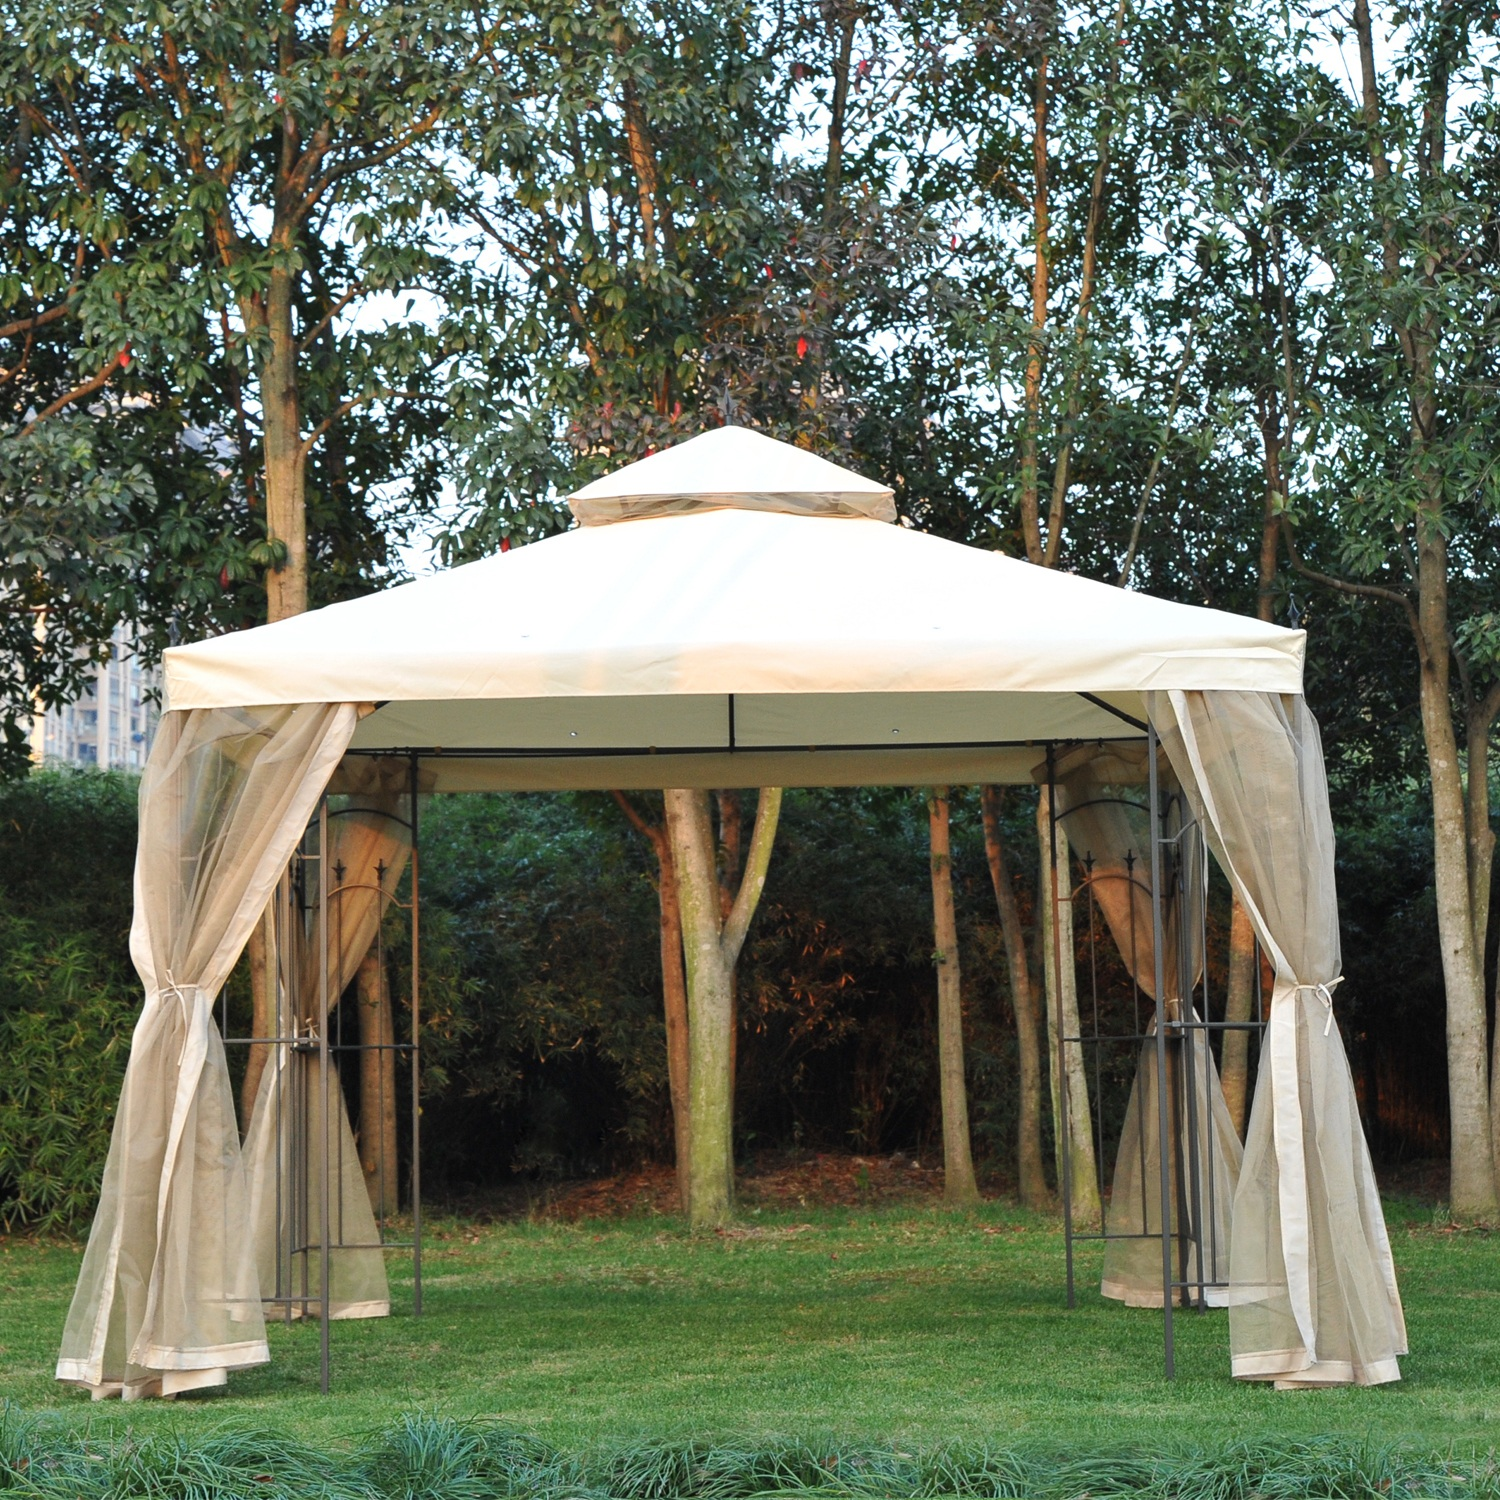 Image of CAD $239.99 Outsunny 10'x10' Garden Gazebo w/ Mesh Curtain Double Top Canopy Beige / 10x10ft Outdoor Patio Event Party Tent Backyard Sun Shade with Canada 95509792679